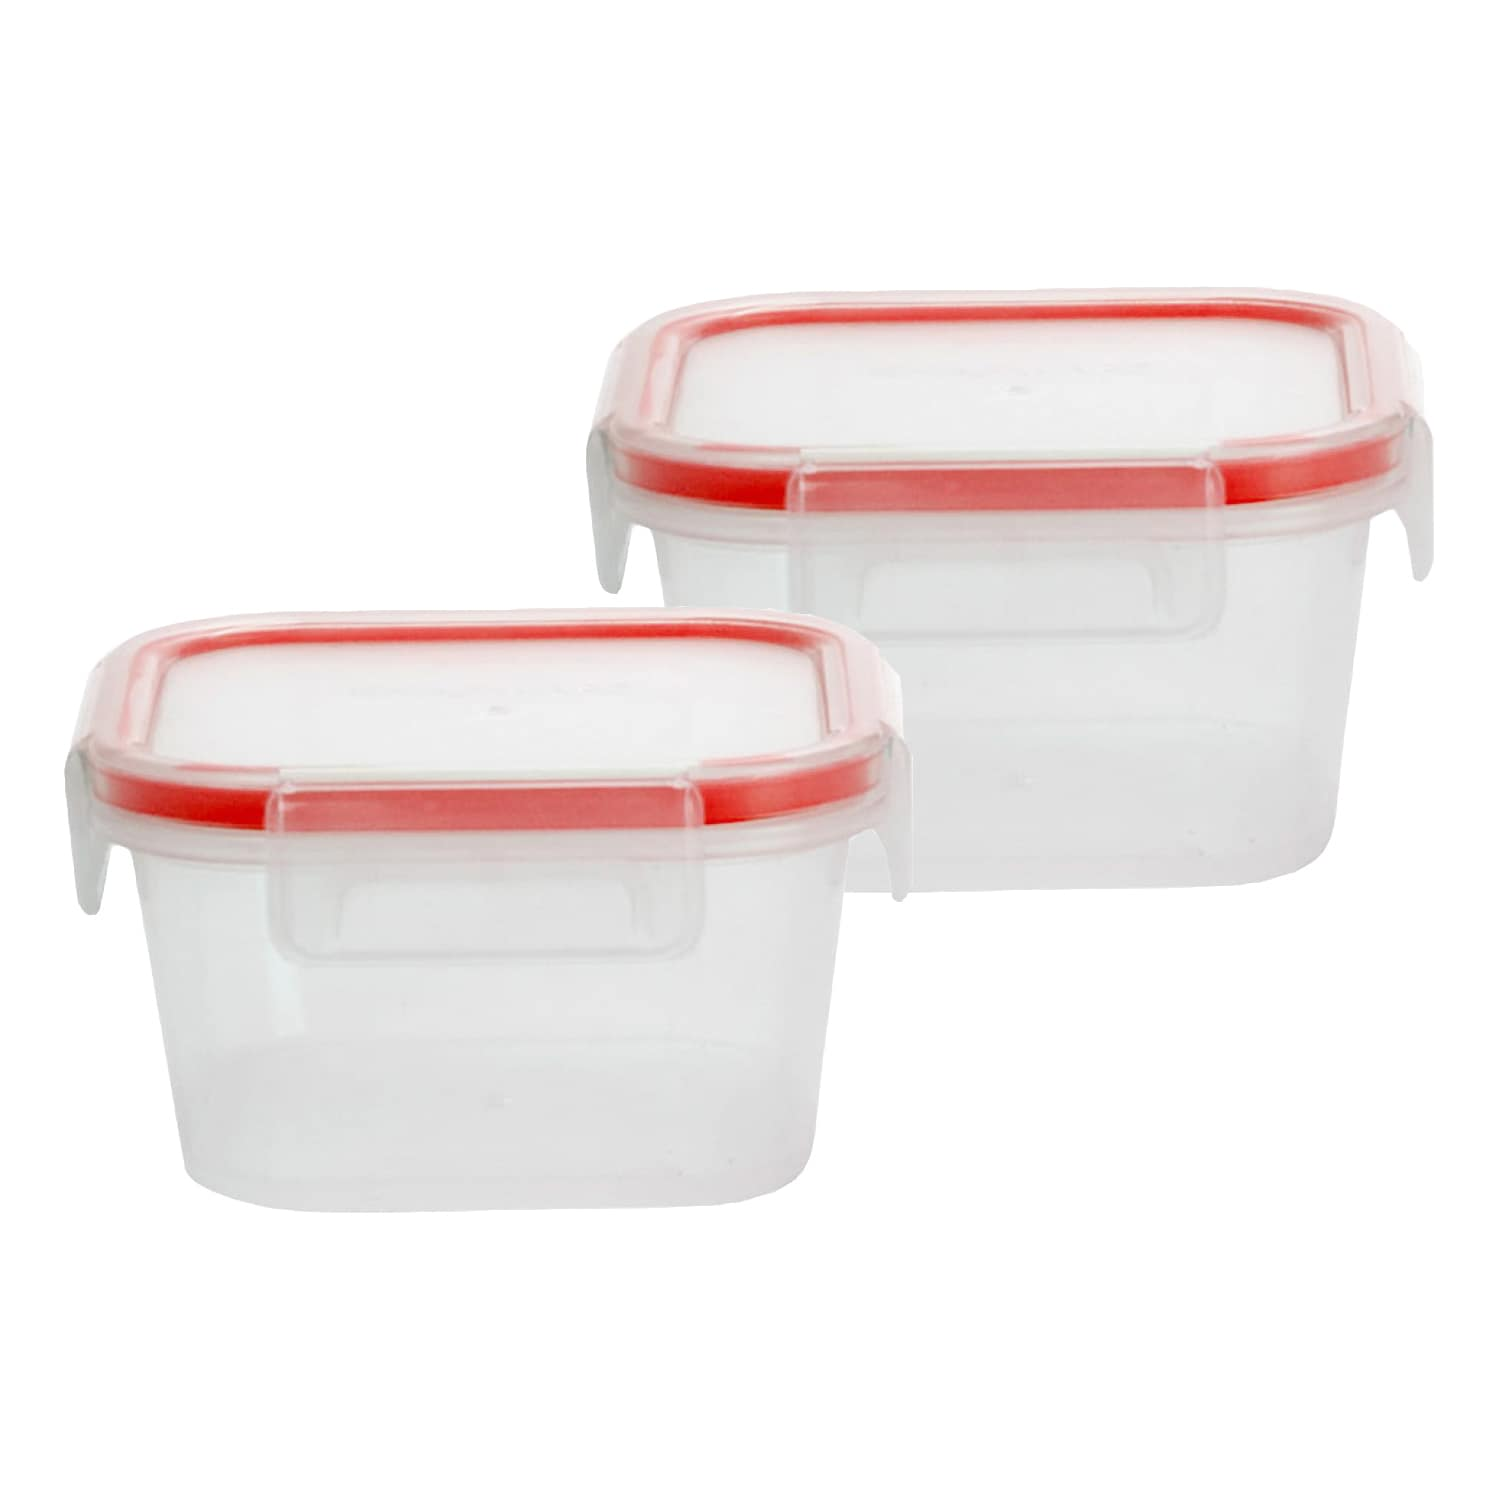 Snapware Airtight Miniature Food Storage Containers (Pack of 2) at Sears.com